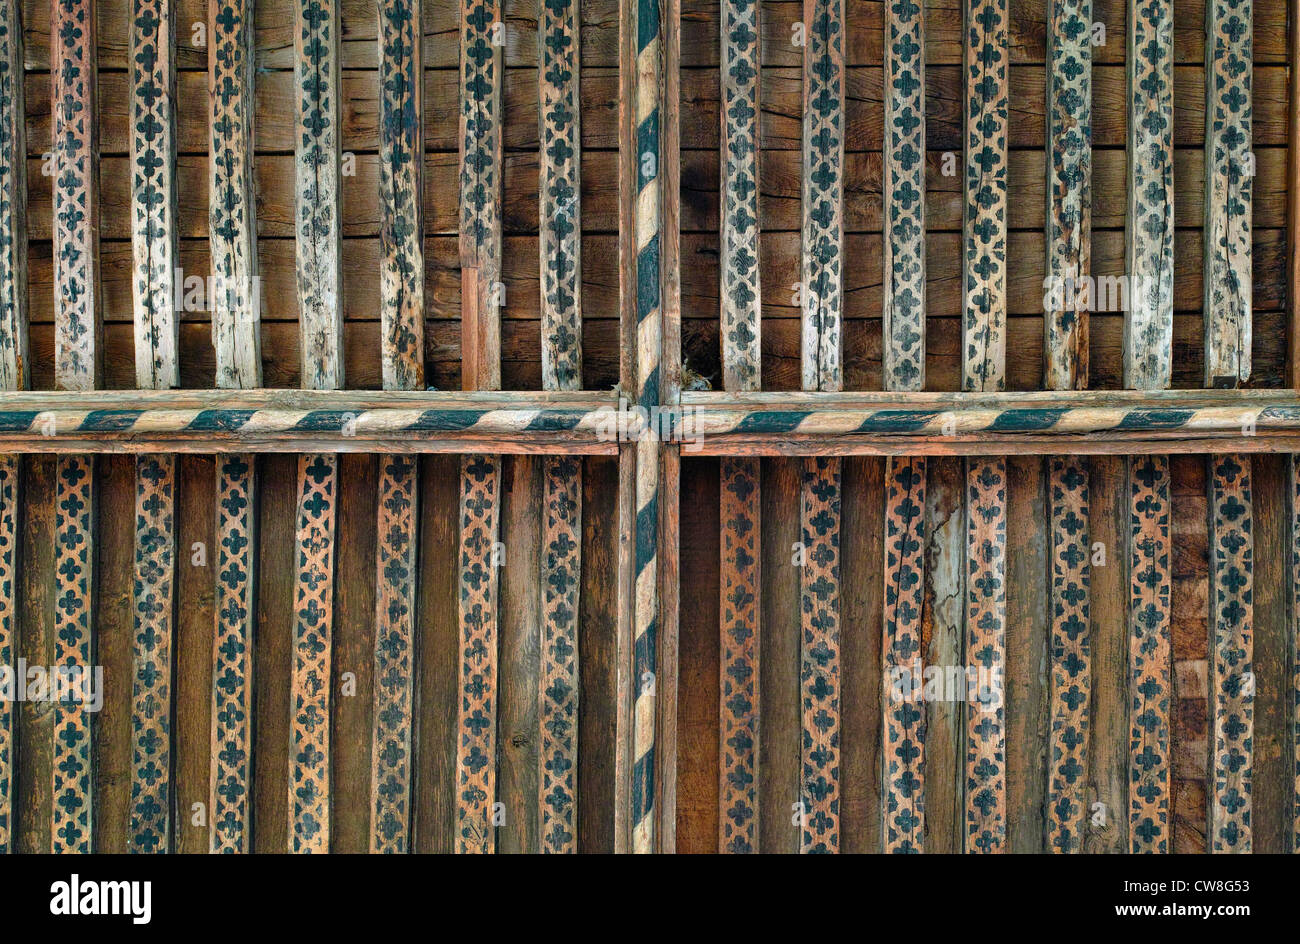 Roof beams in Thaxted parish church - Stock Image